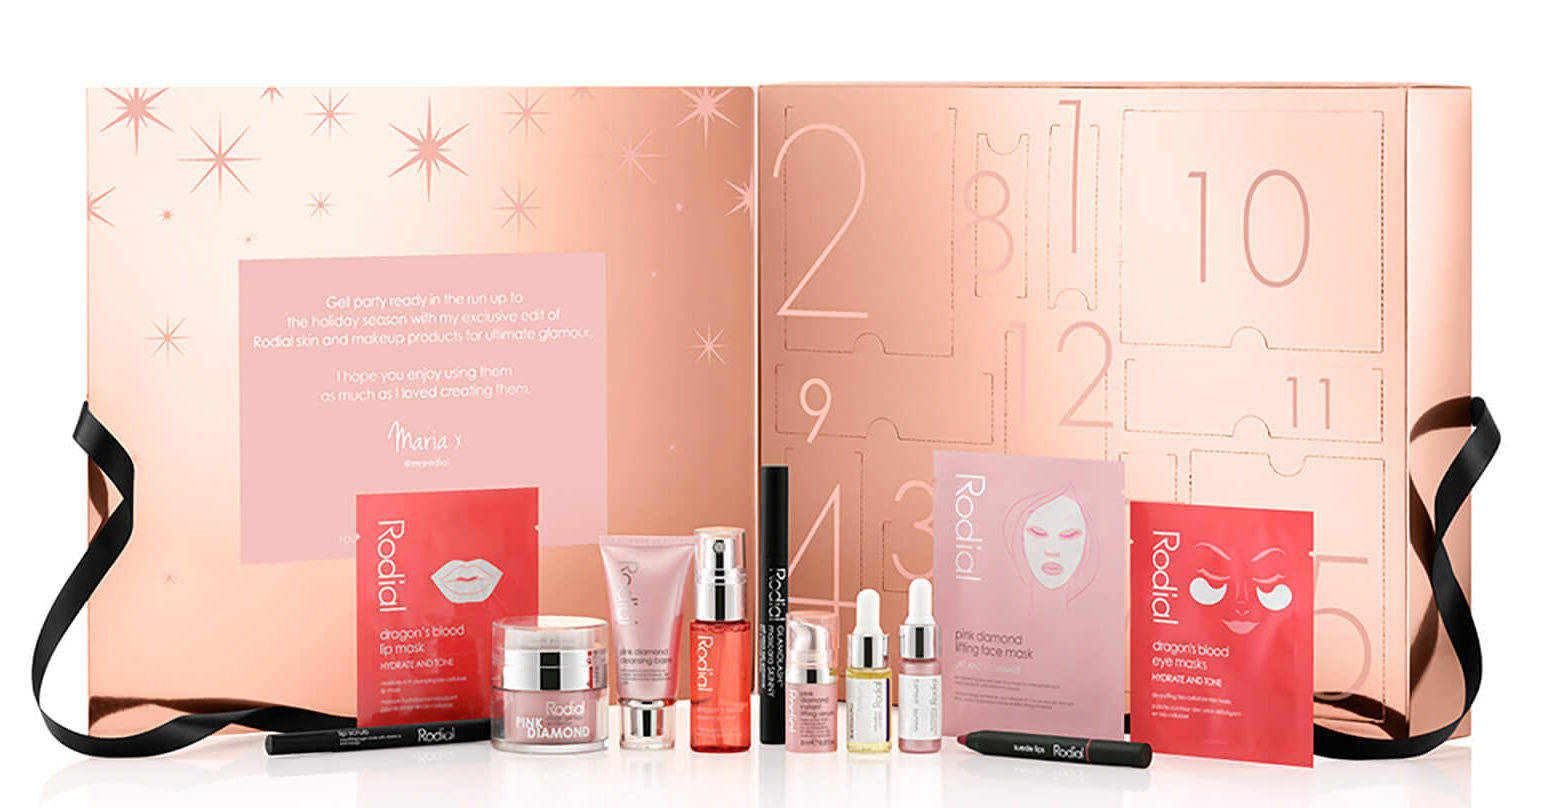 Rodial Calendario de Adviento 12 Days 2019 Rodial Advent Calendar